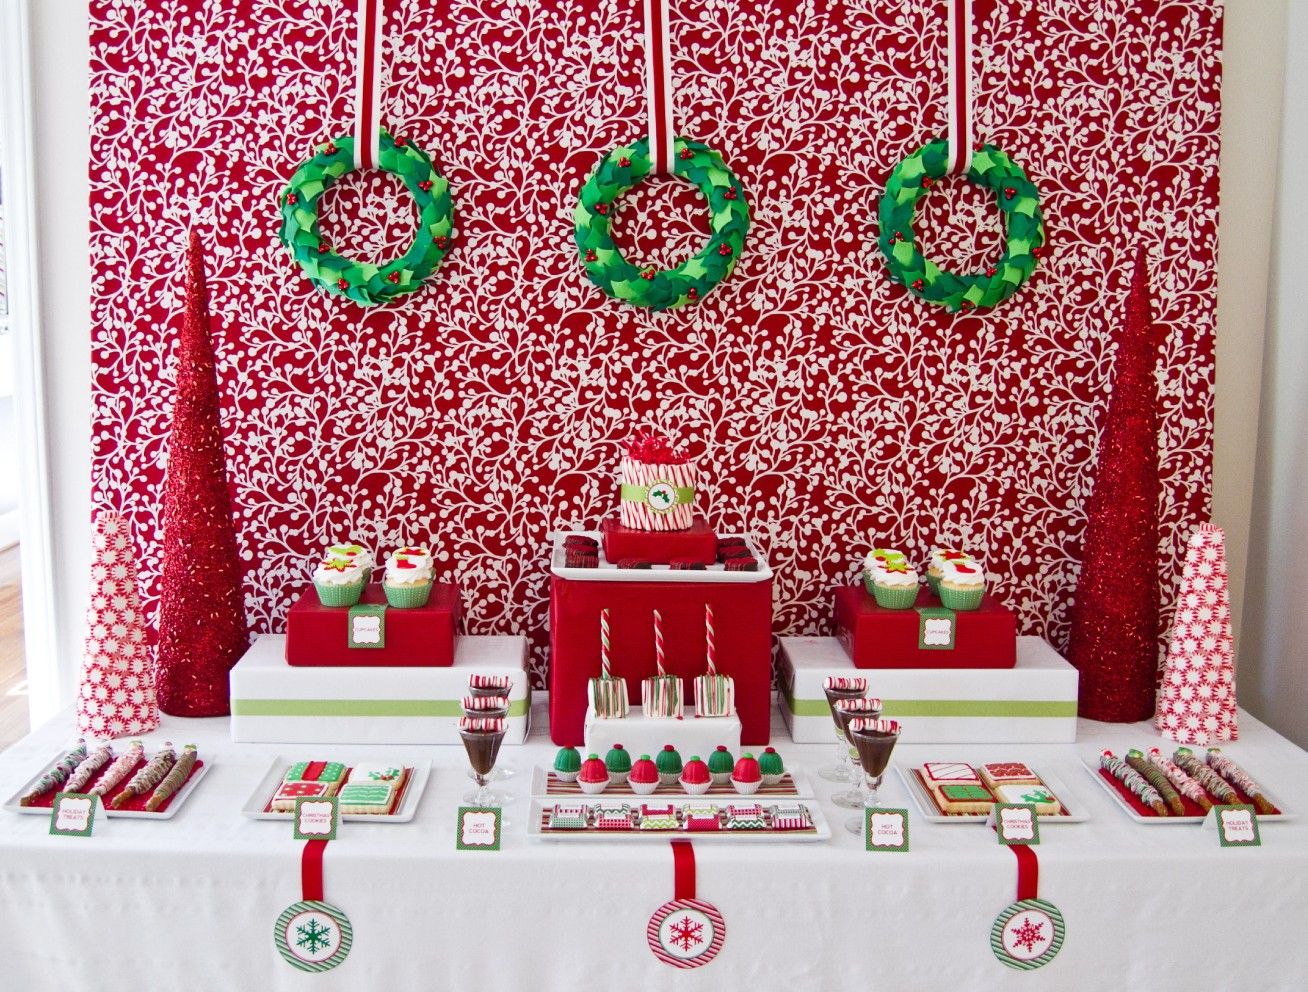 Christmas dessert table decoration ideas - 6 Ideas For The Christmas Dessert Table